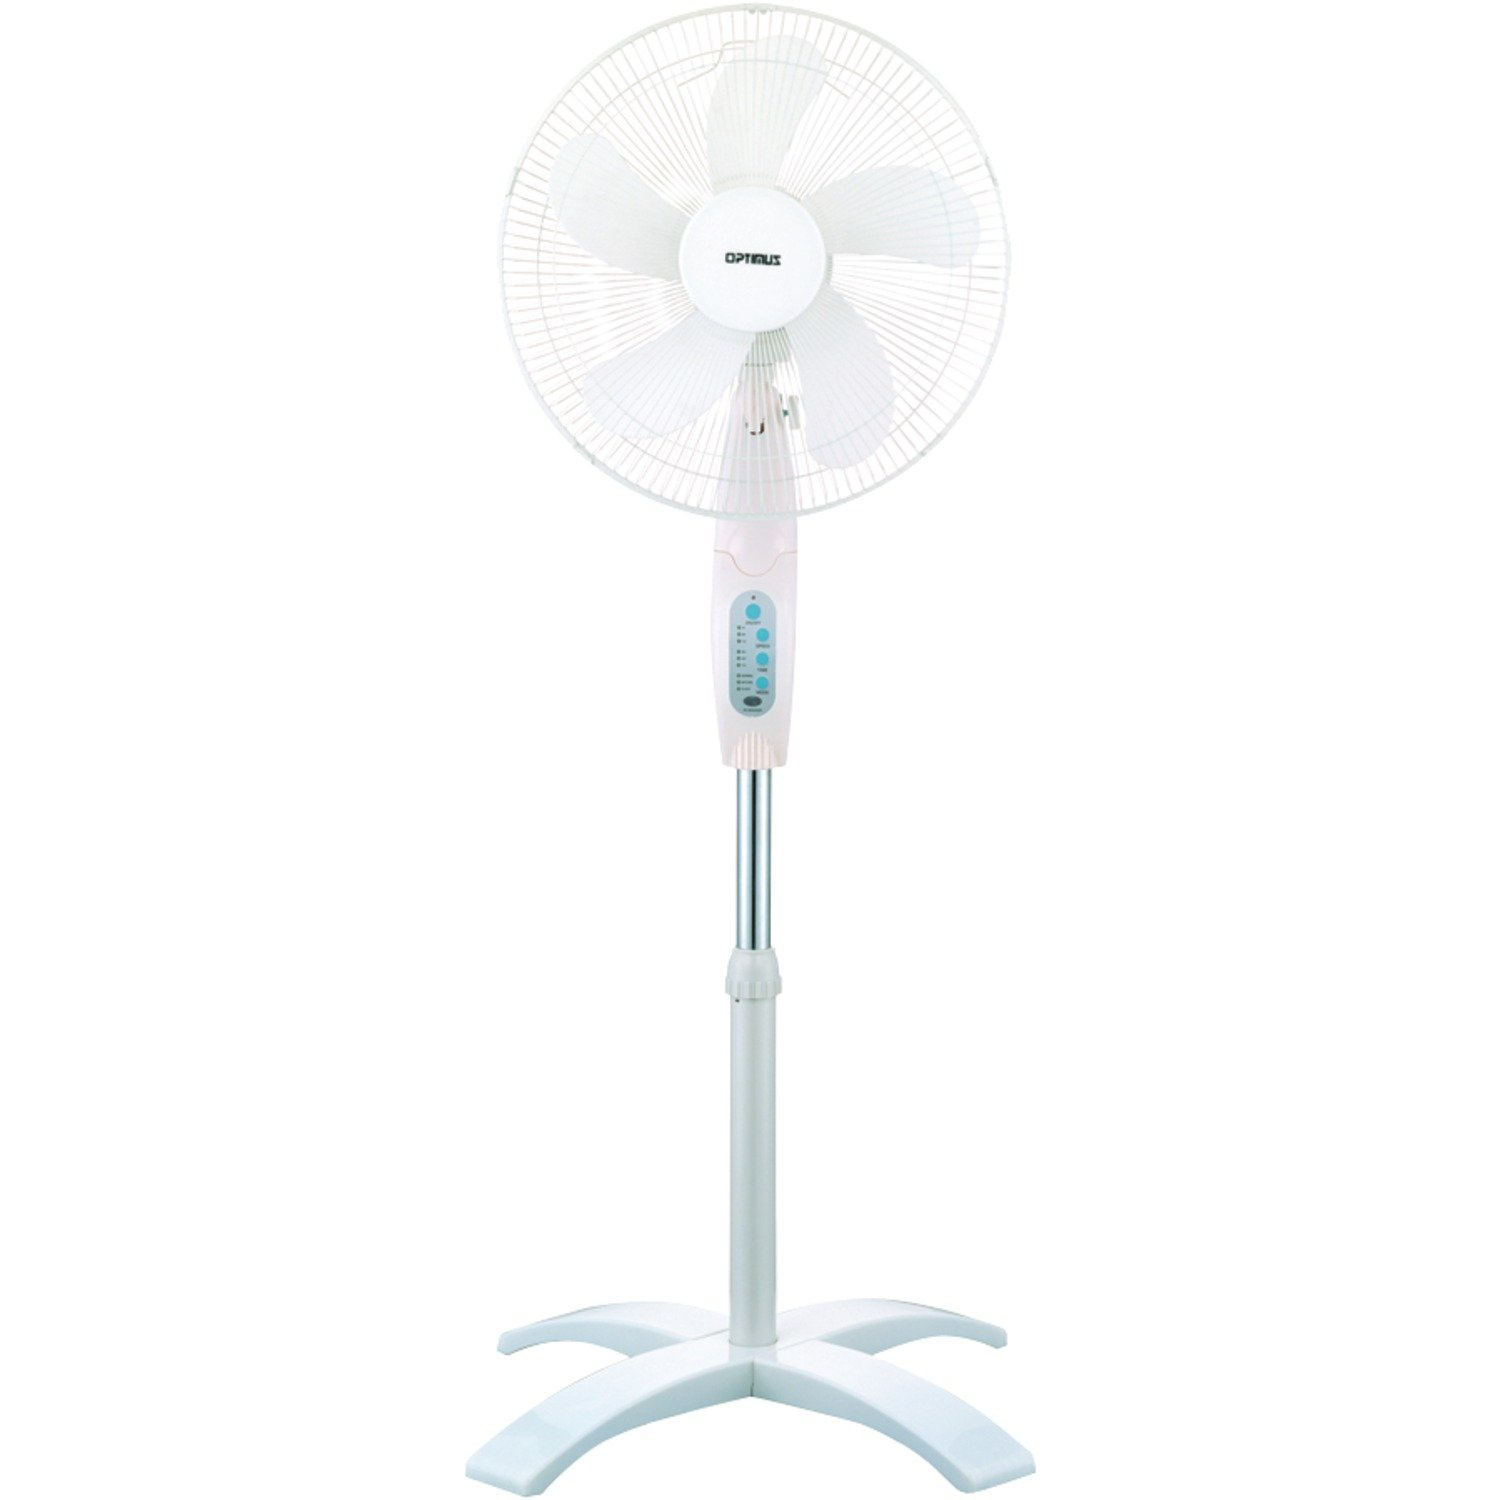 Optimus F-1760 16-Inch Wave Oscillating 3-Speed Stand Fan with Remote Control, White